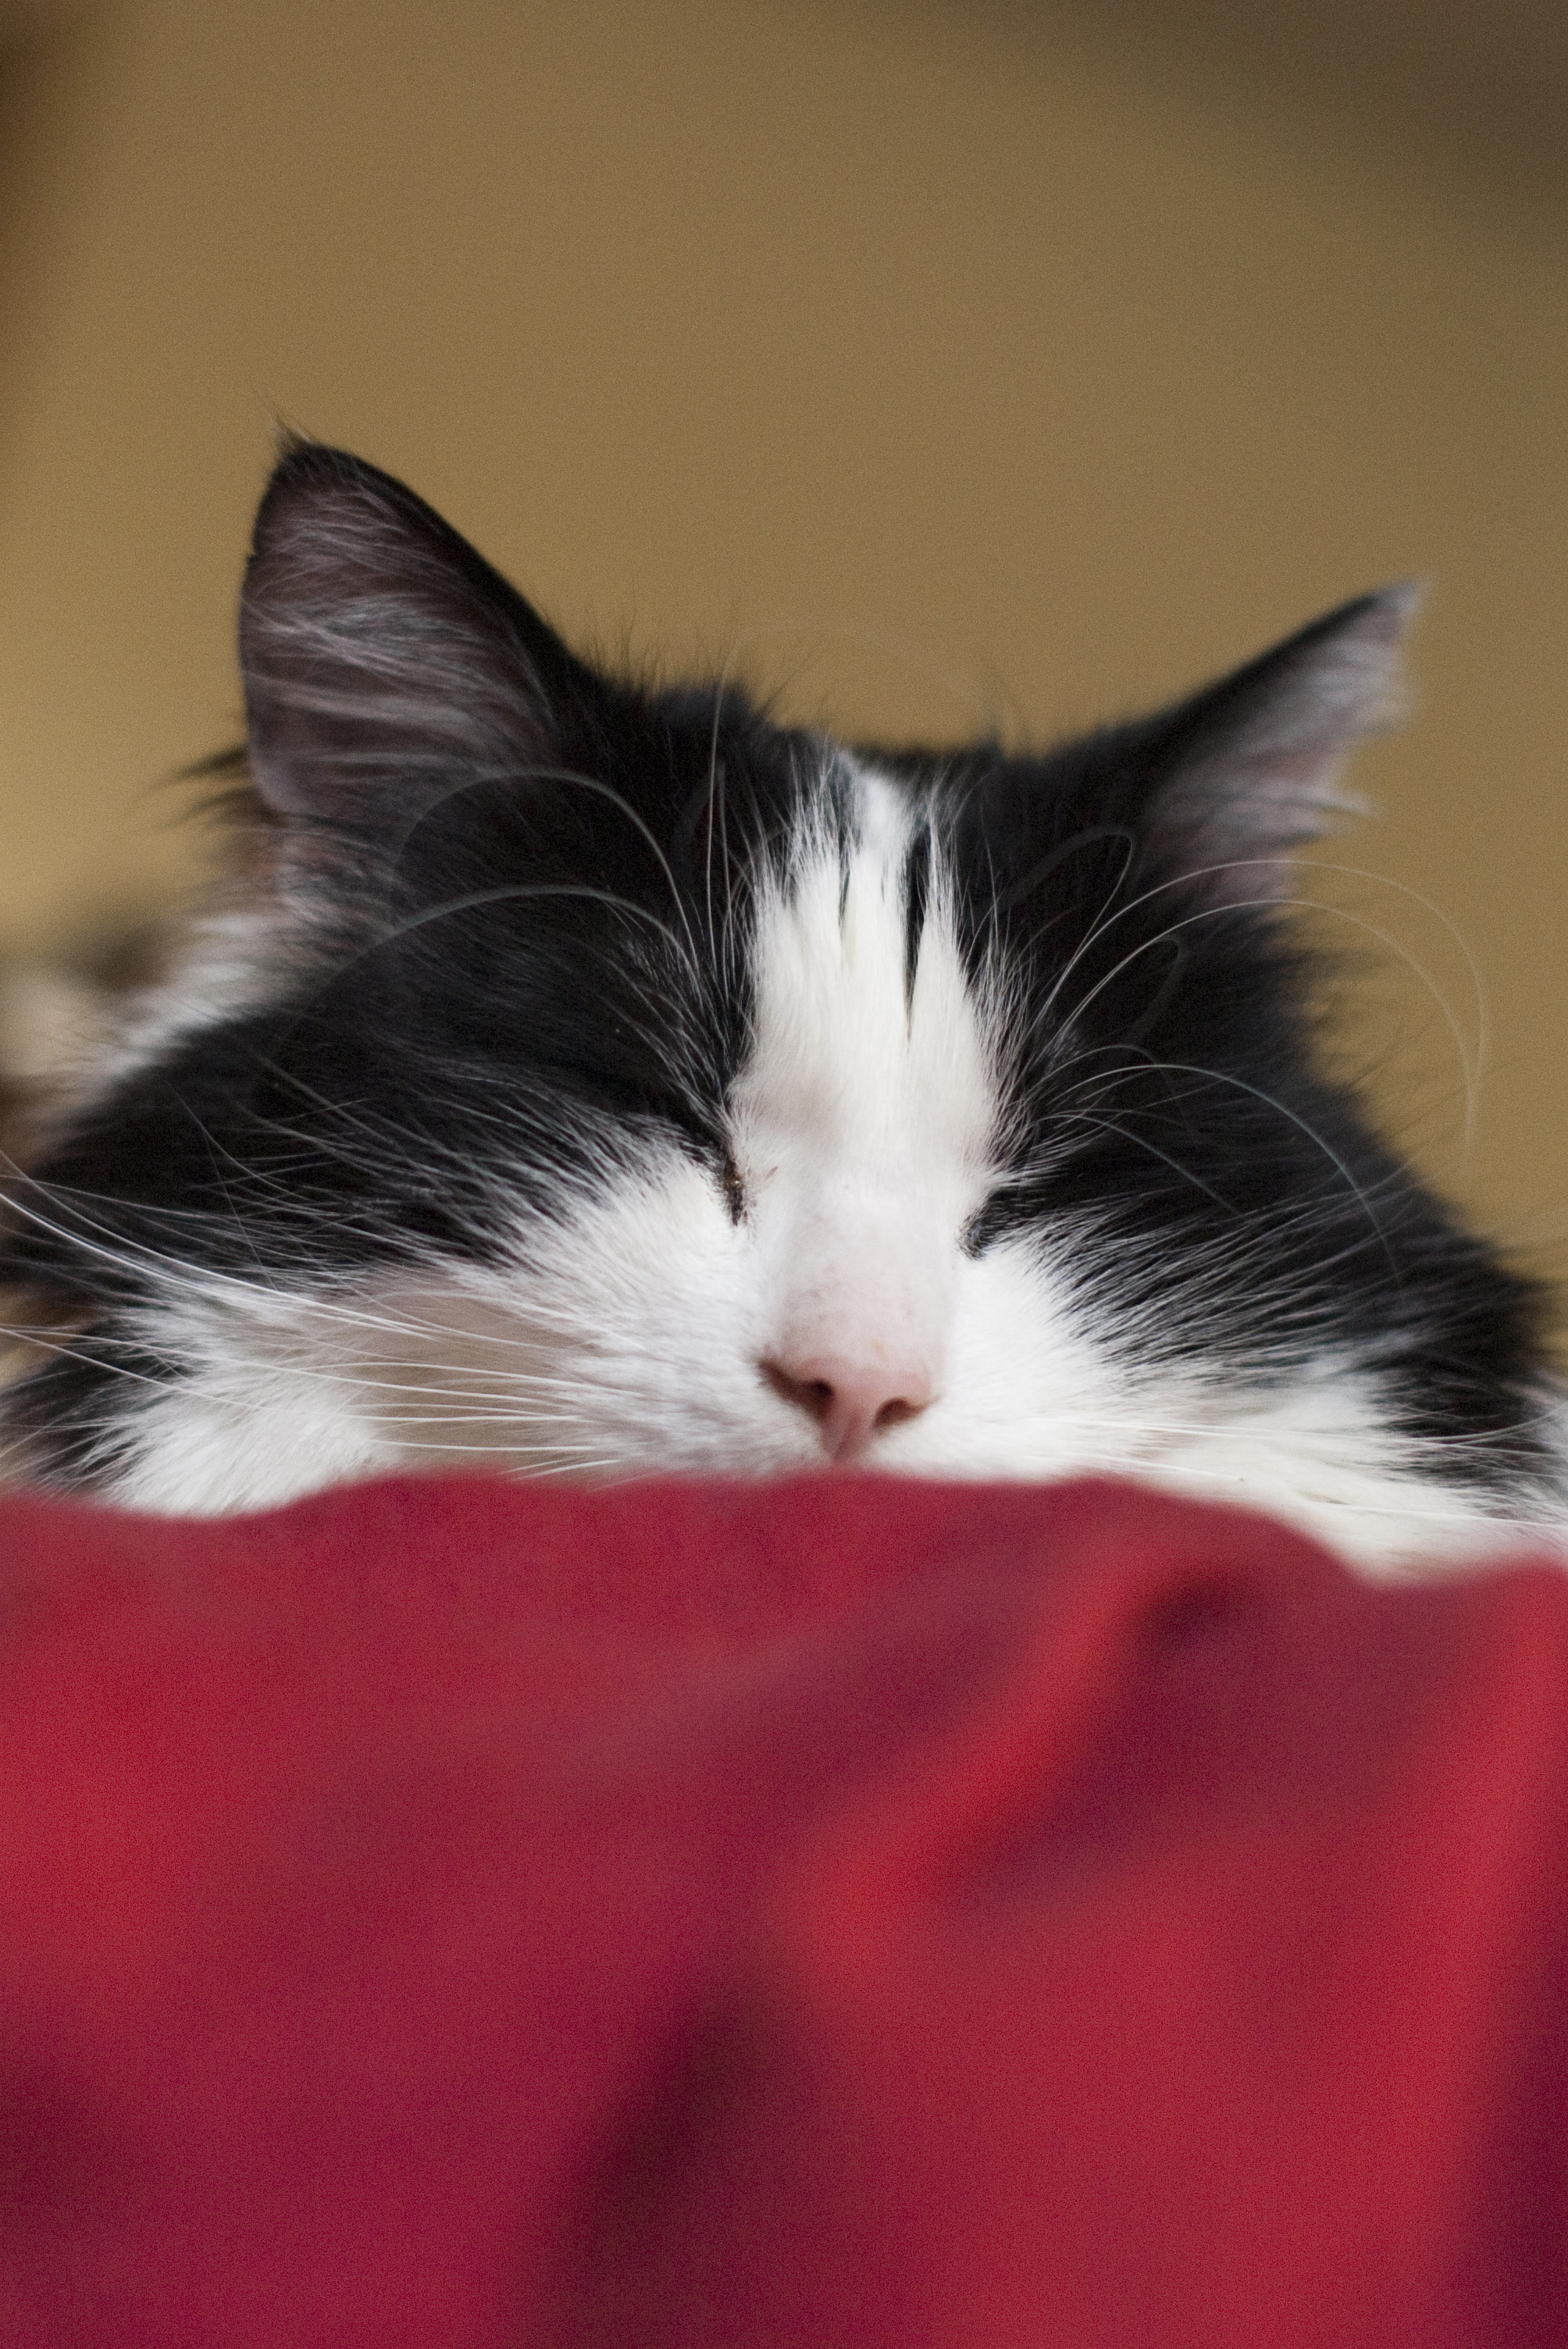 Free Stock Photo 2856 Tired Sleepy Cat Freeimageslive